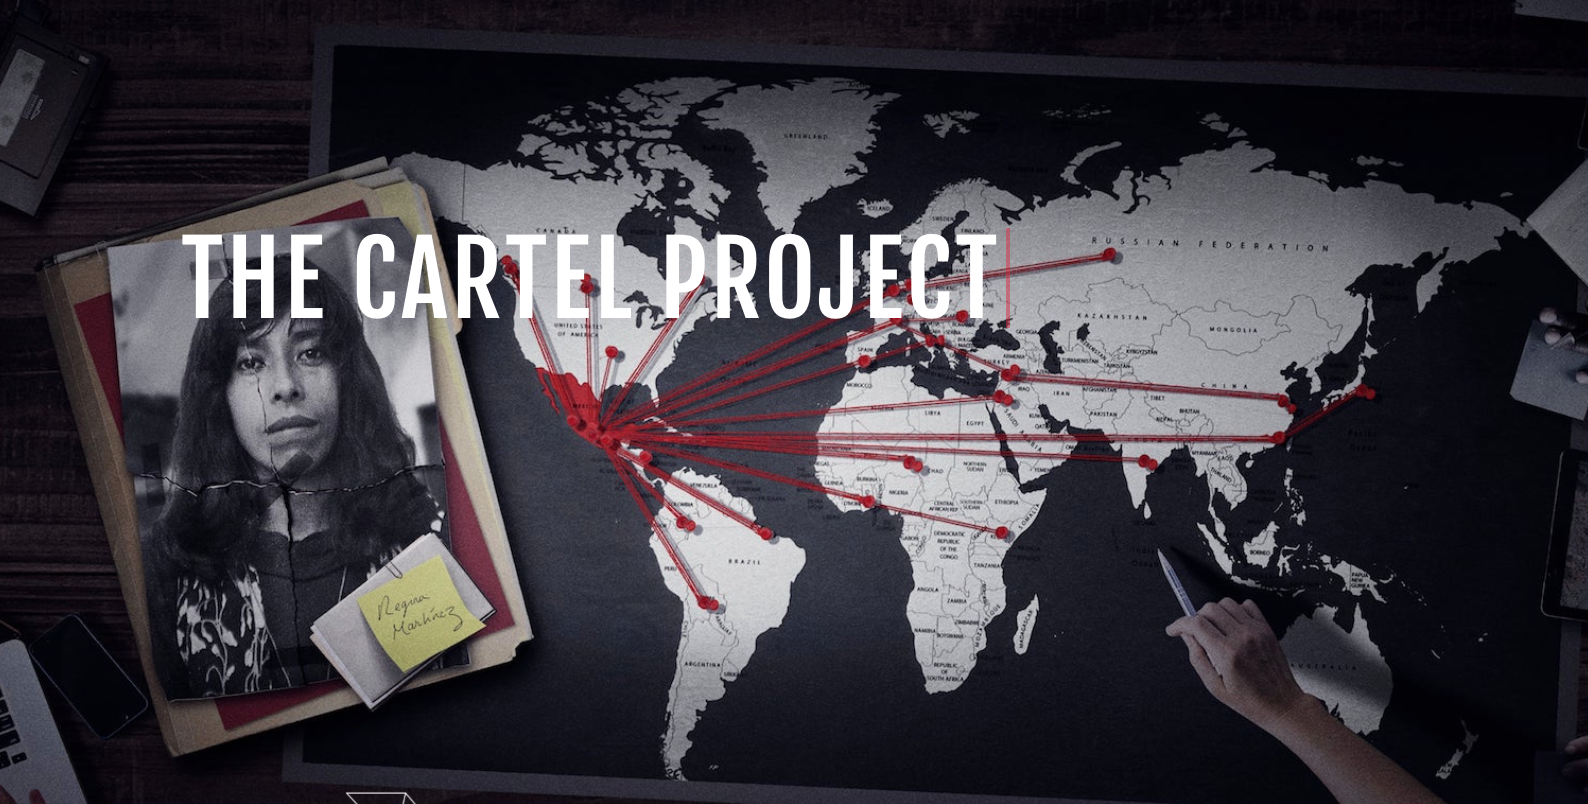 The Cartel Project